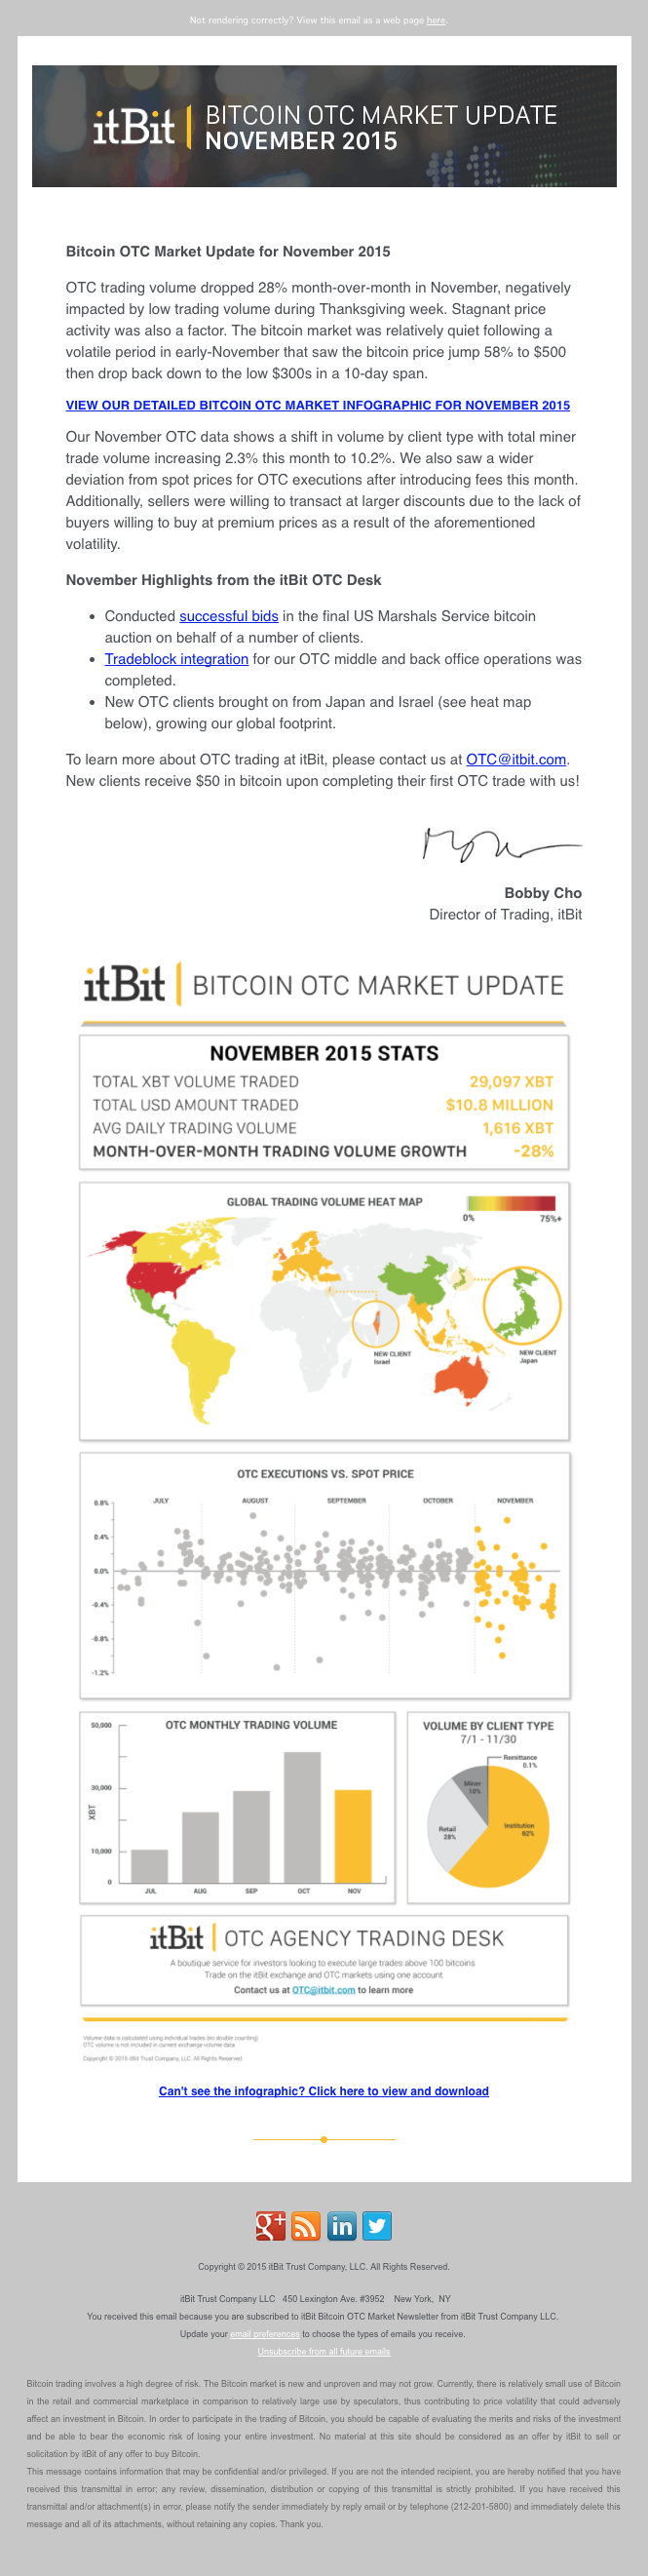 itBit-Bitcoin-OTC-Market-Update-Email.png